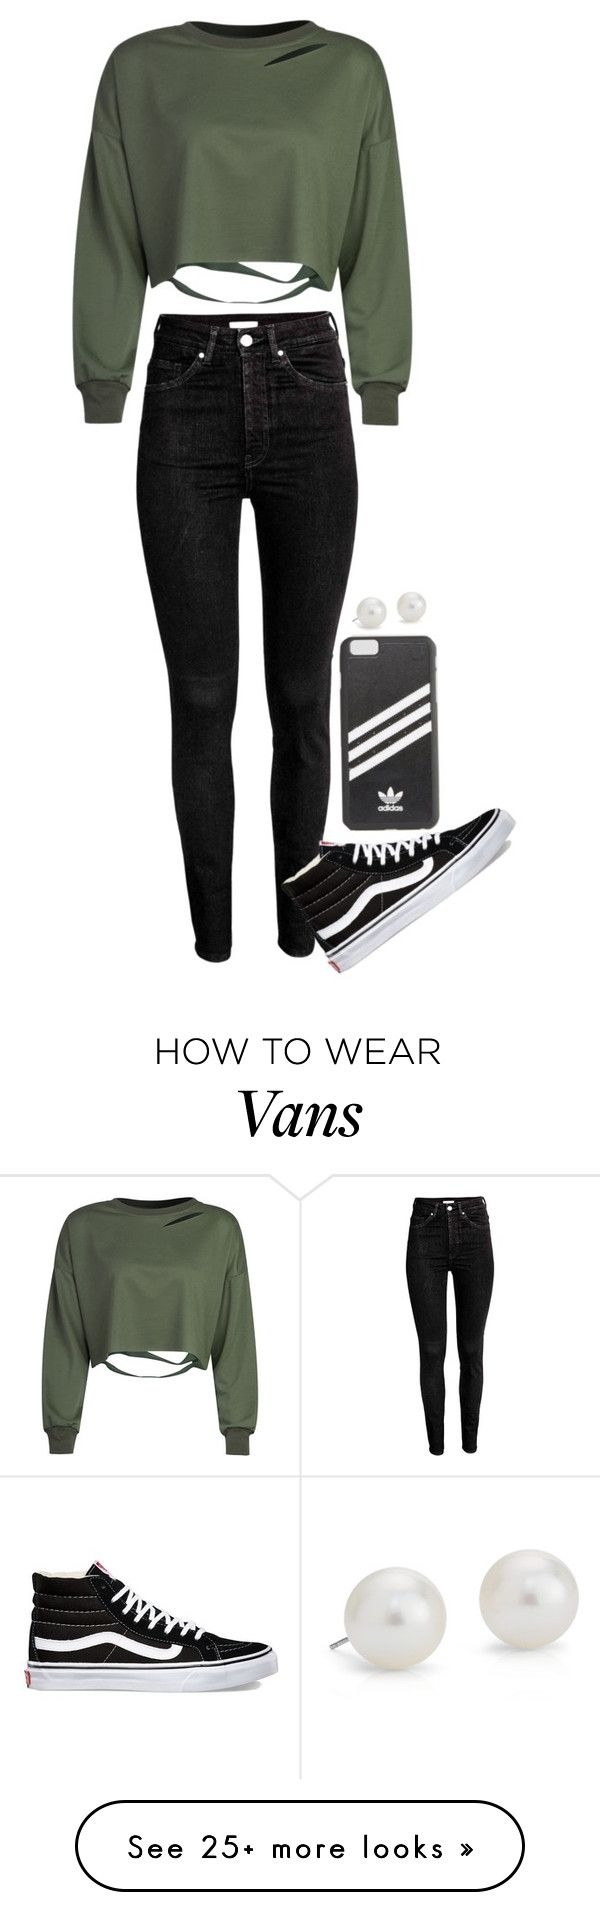 """A darker look???"" by cait926 on Polyvore featuring adidas, WithChic, Vans and Blue Nile"